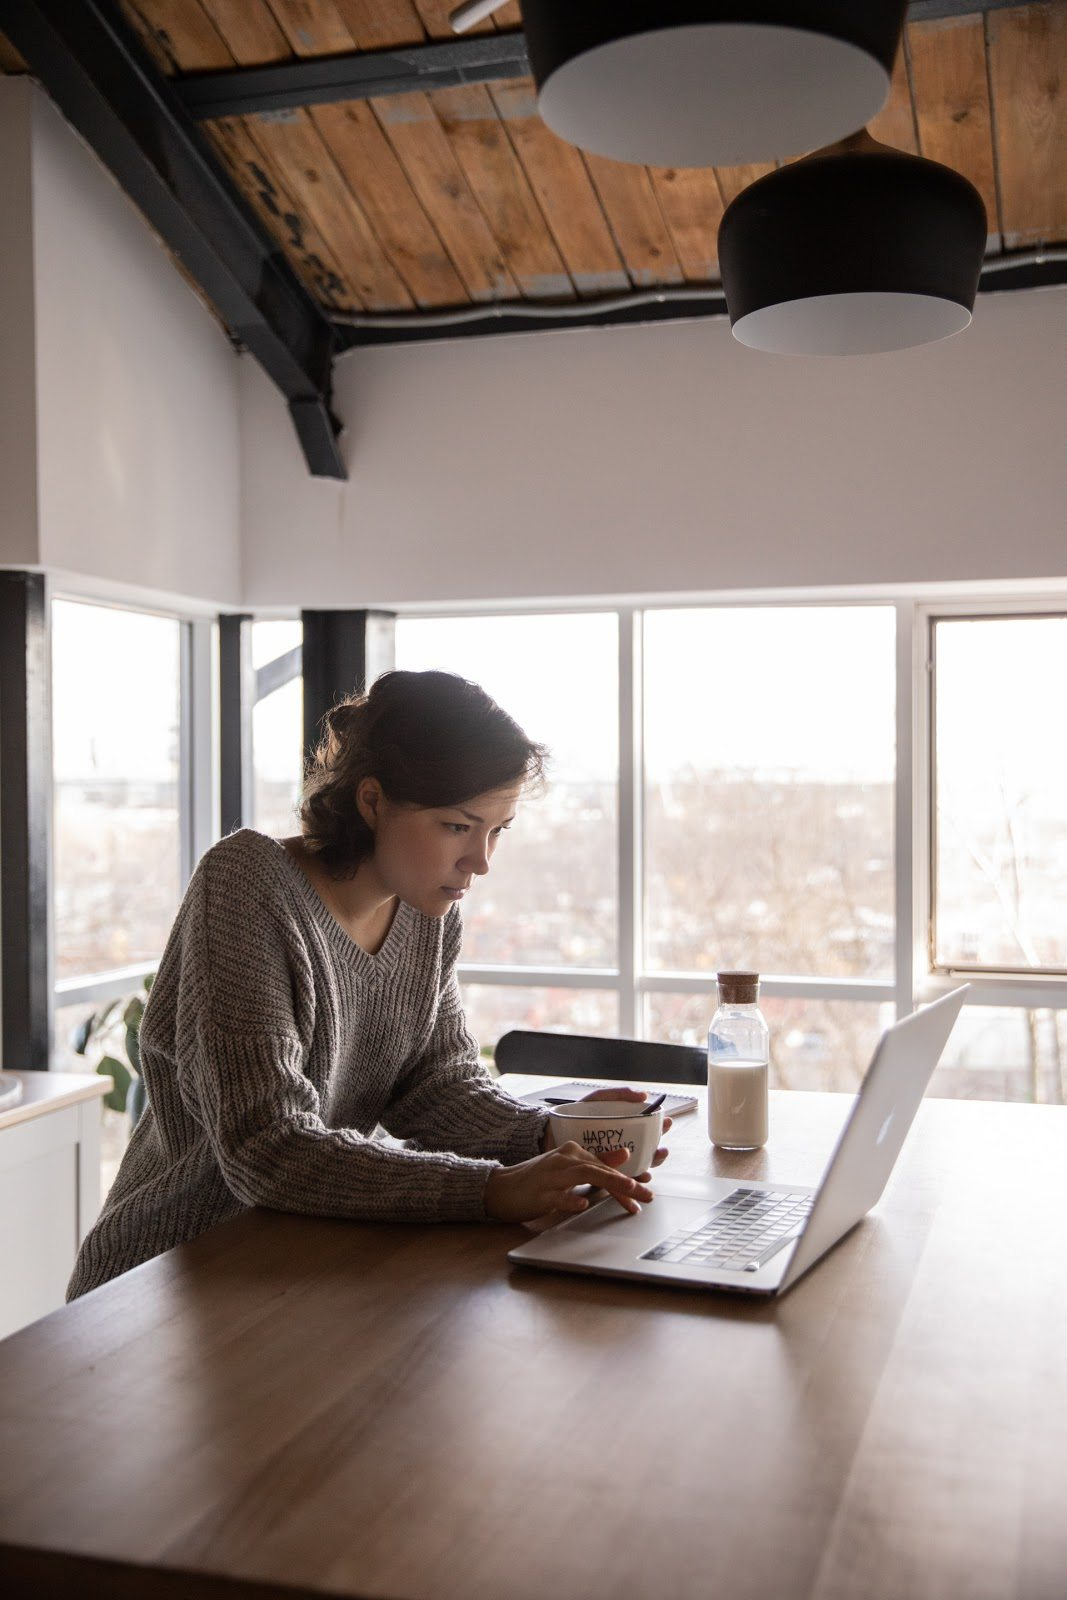 focused-young-woman-using-laptop-in-kitchen-during-breakfast improve your business website planning